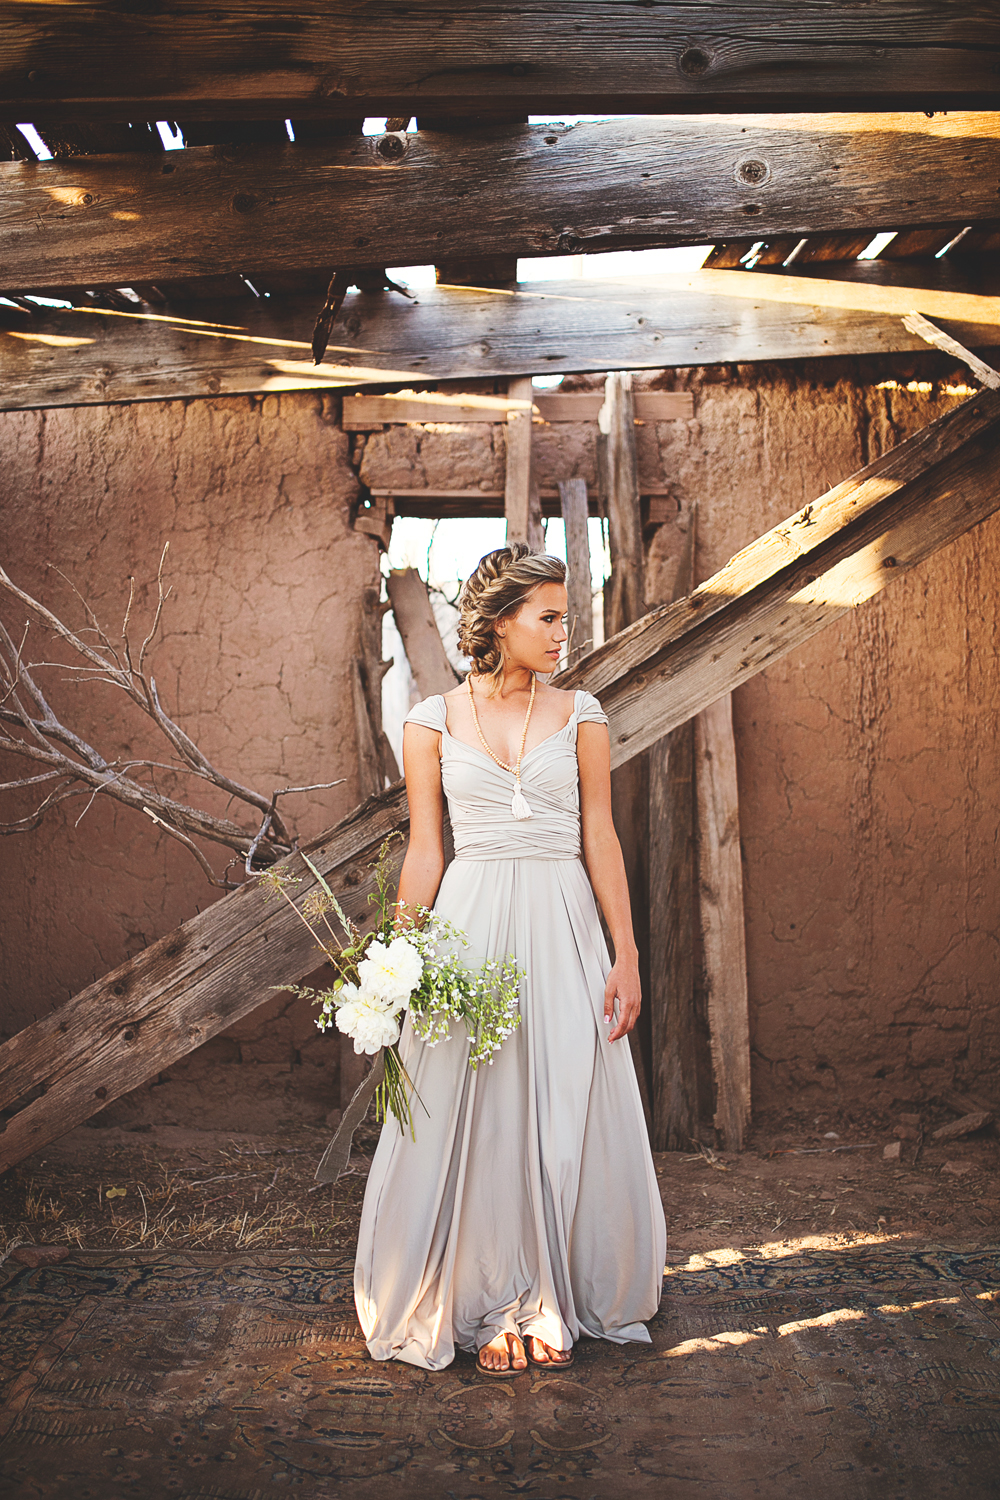 Liz Anne Photography | Wabi Sabi Wedding Inspiration_26.jpg